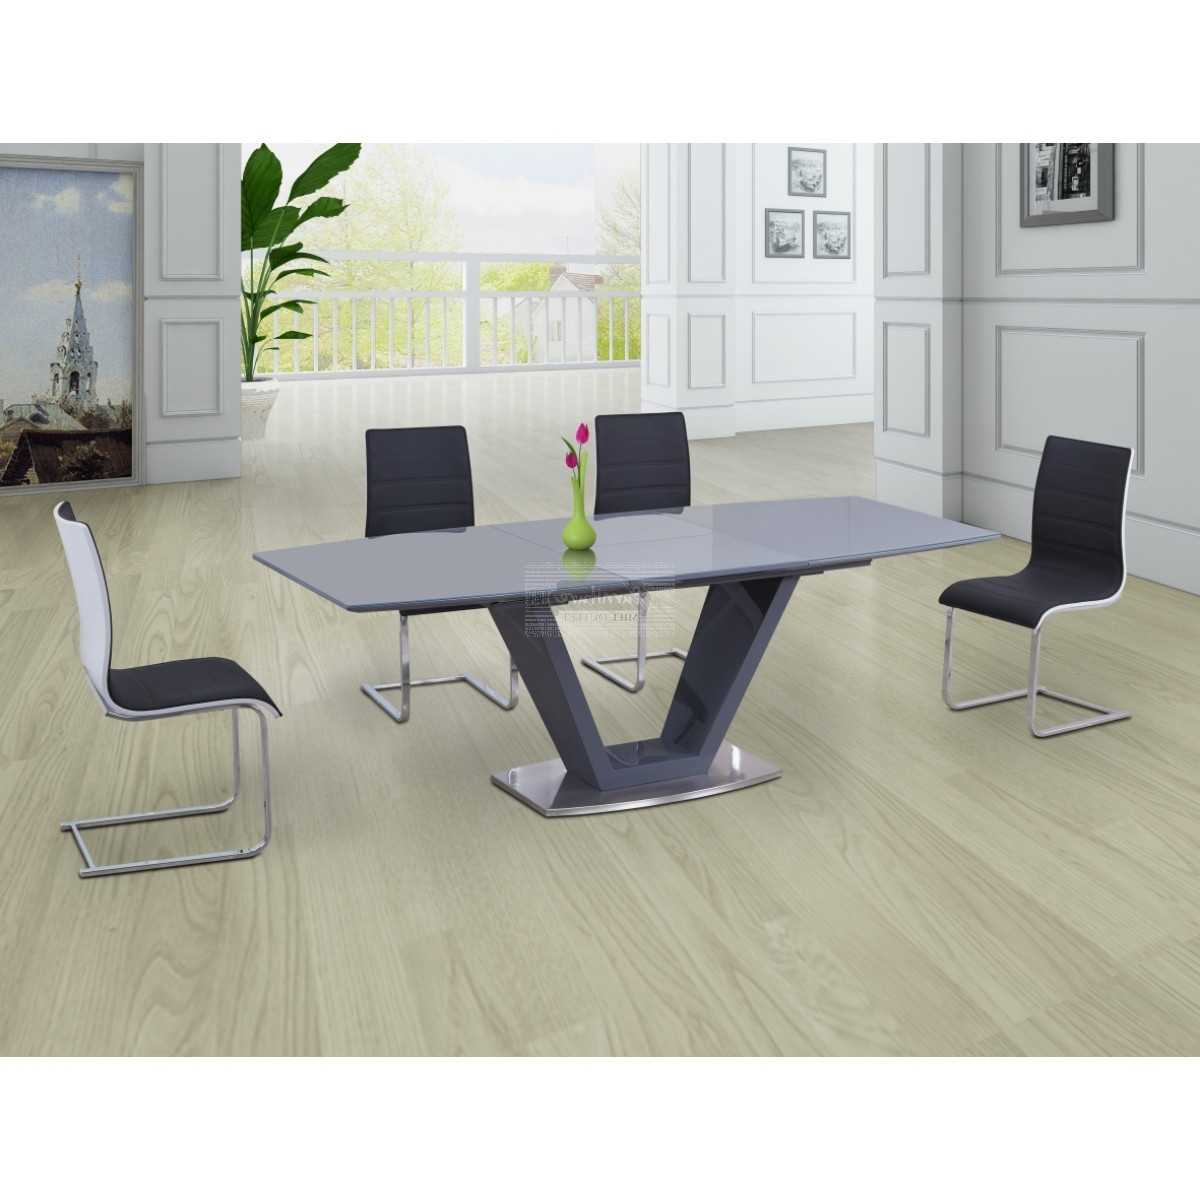 High Gloss White Extending Dining Tables inside Well known Lorgato Grey High Gloss Extending Dining Table - 160Cm To 220Cm